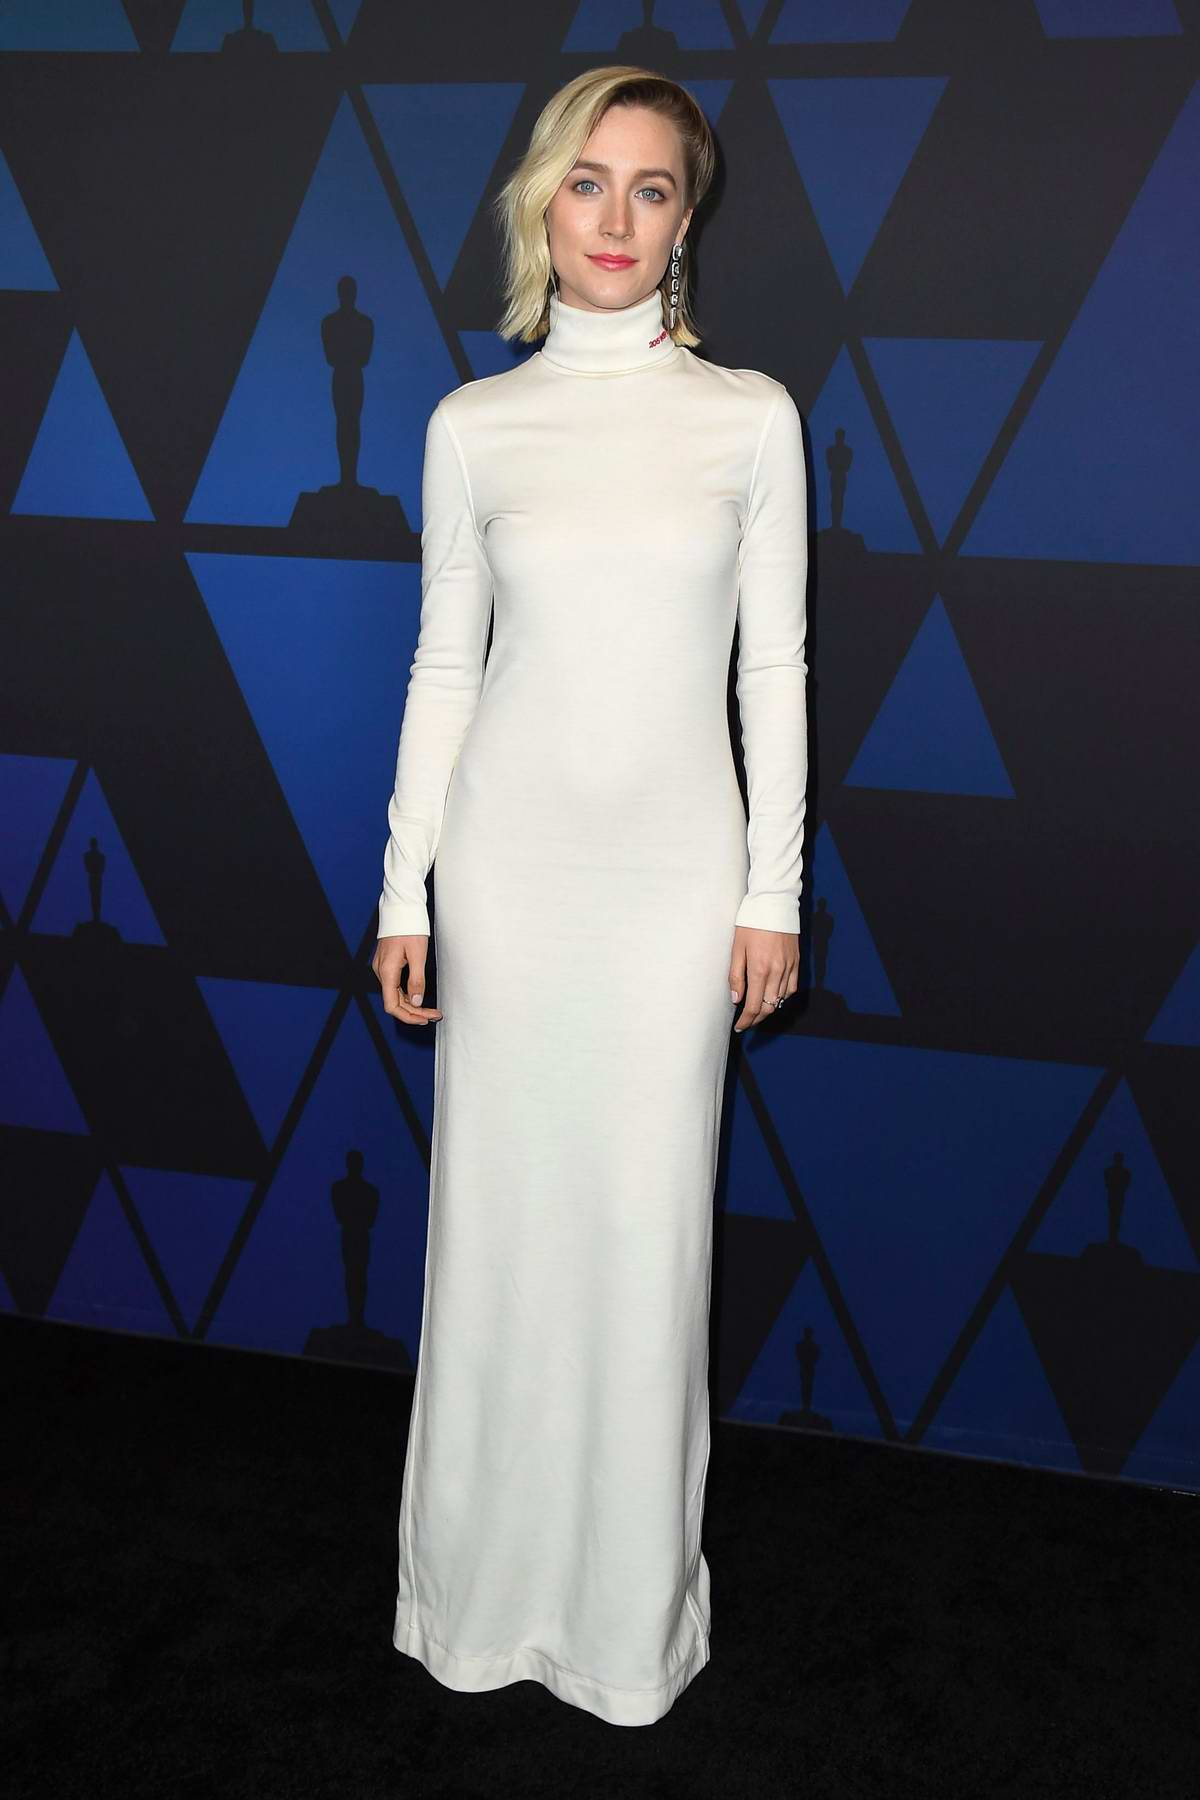 Saoirse Ronan attends the 10th Annual Governors Awards at the Academy Of Motion Picture Arts And Sciences' in Hollywood, California